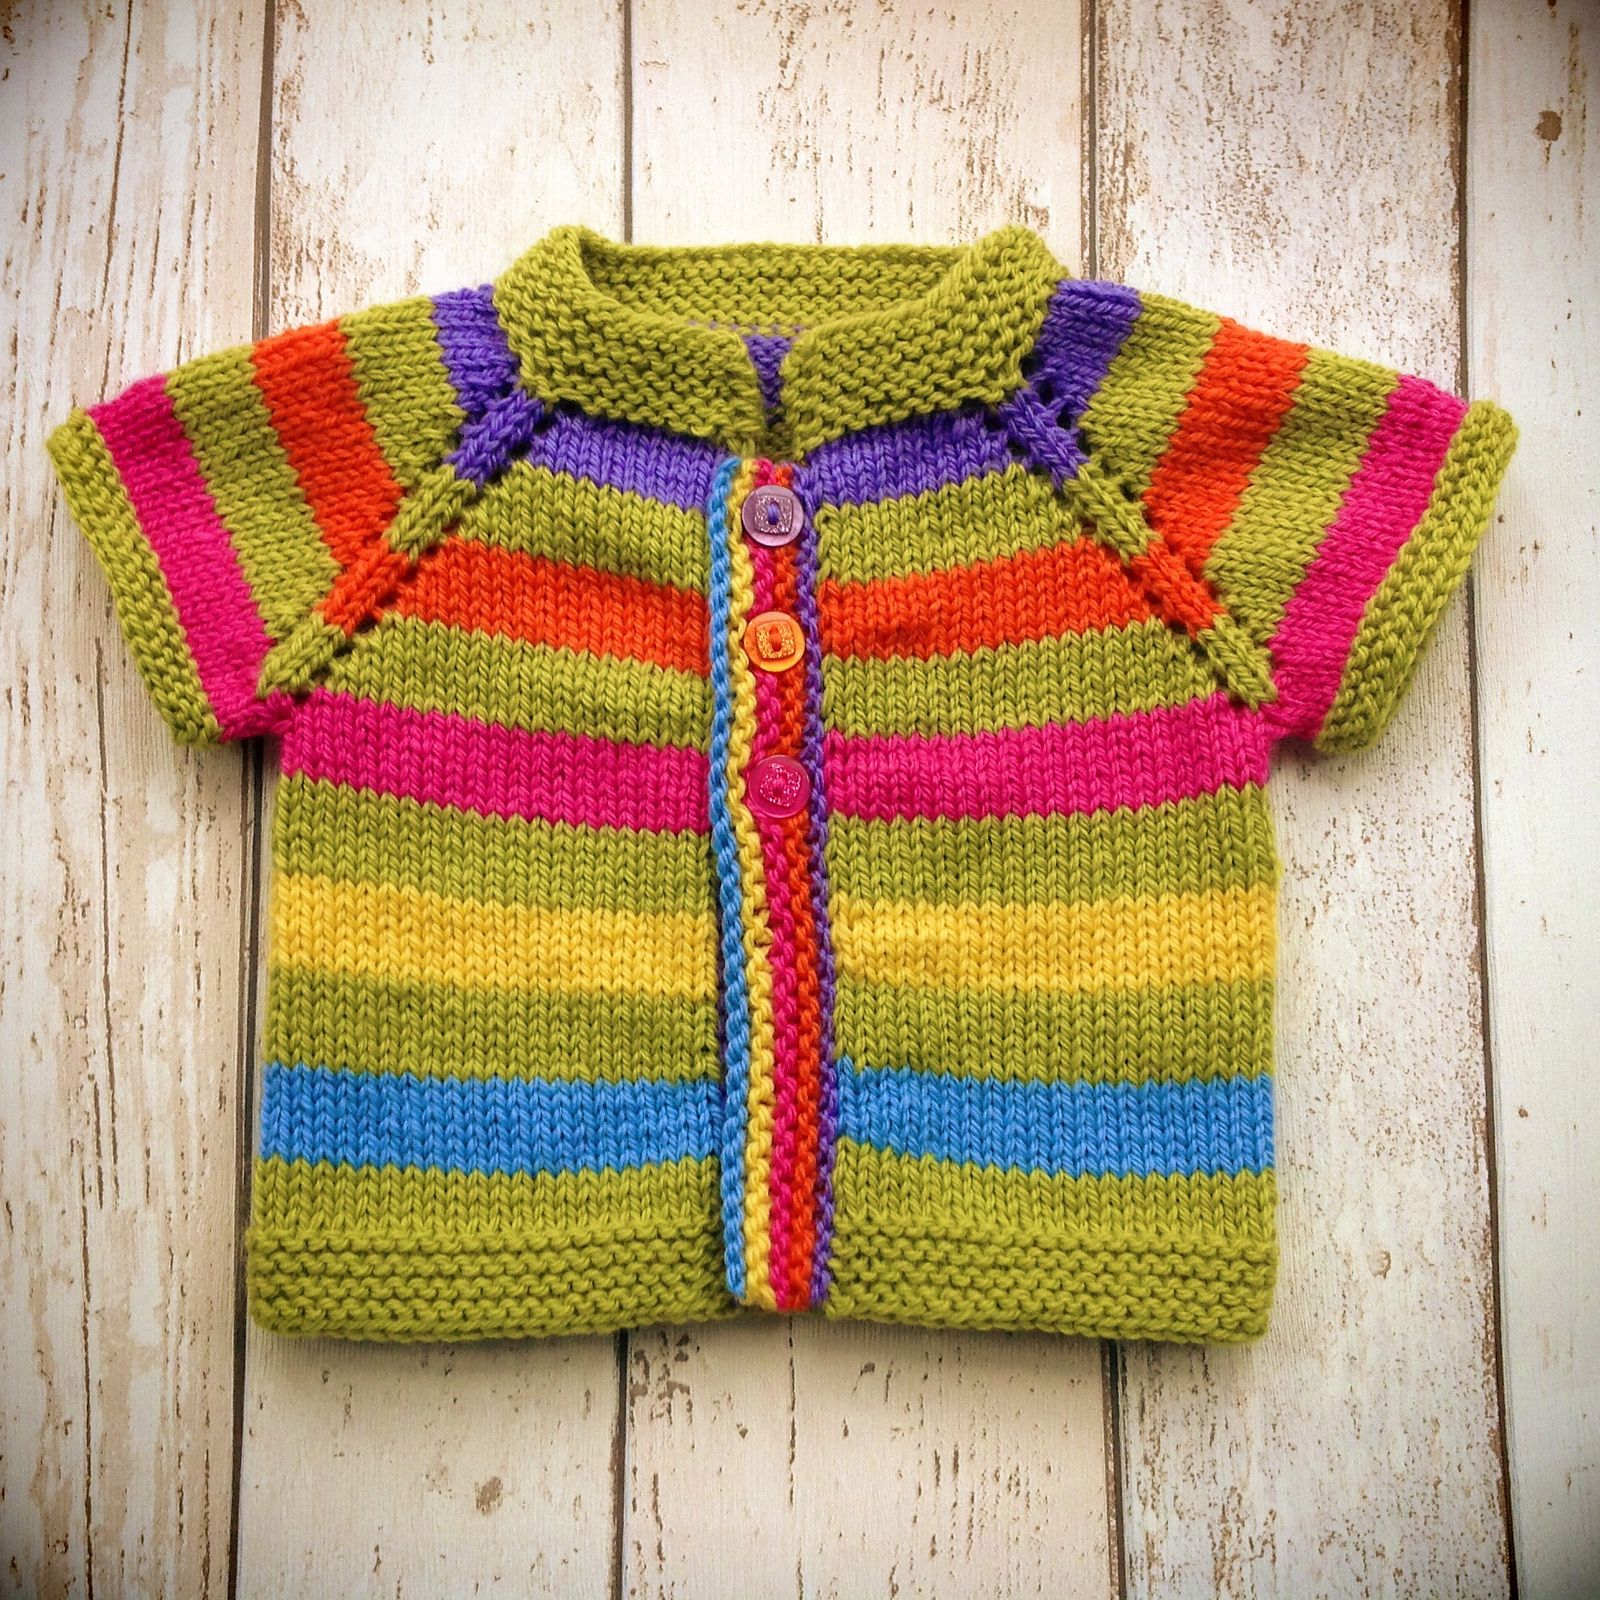 3de83369e643 Ravelry  Fuss Free Baby cardigan by Louise Tilbrook